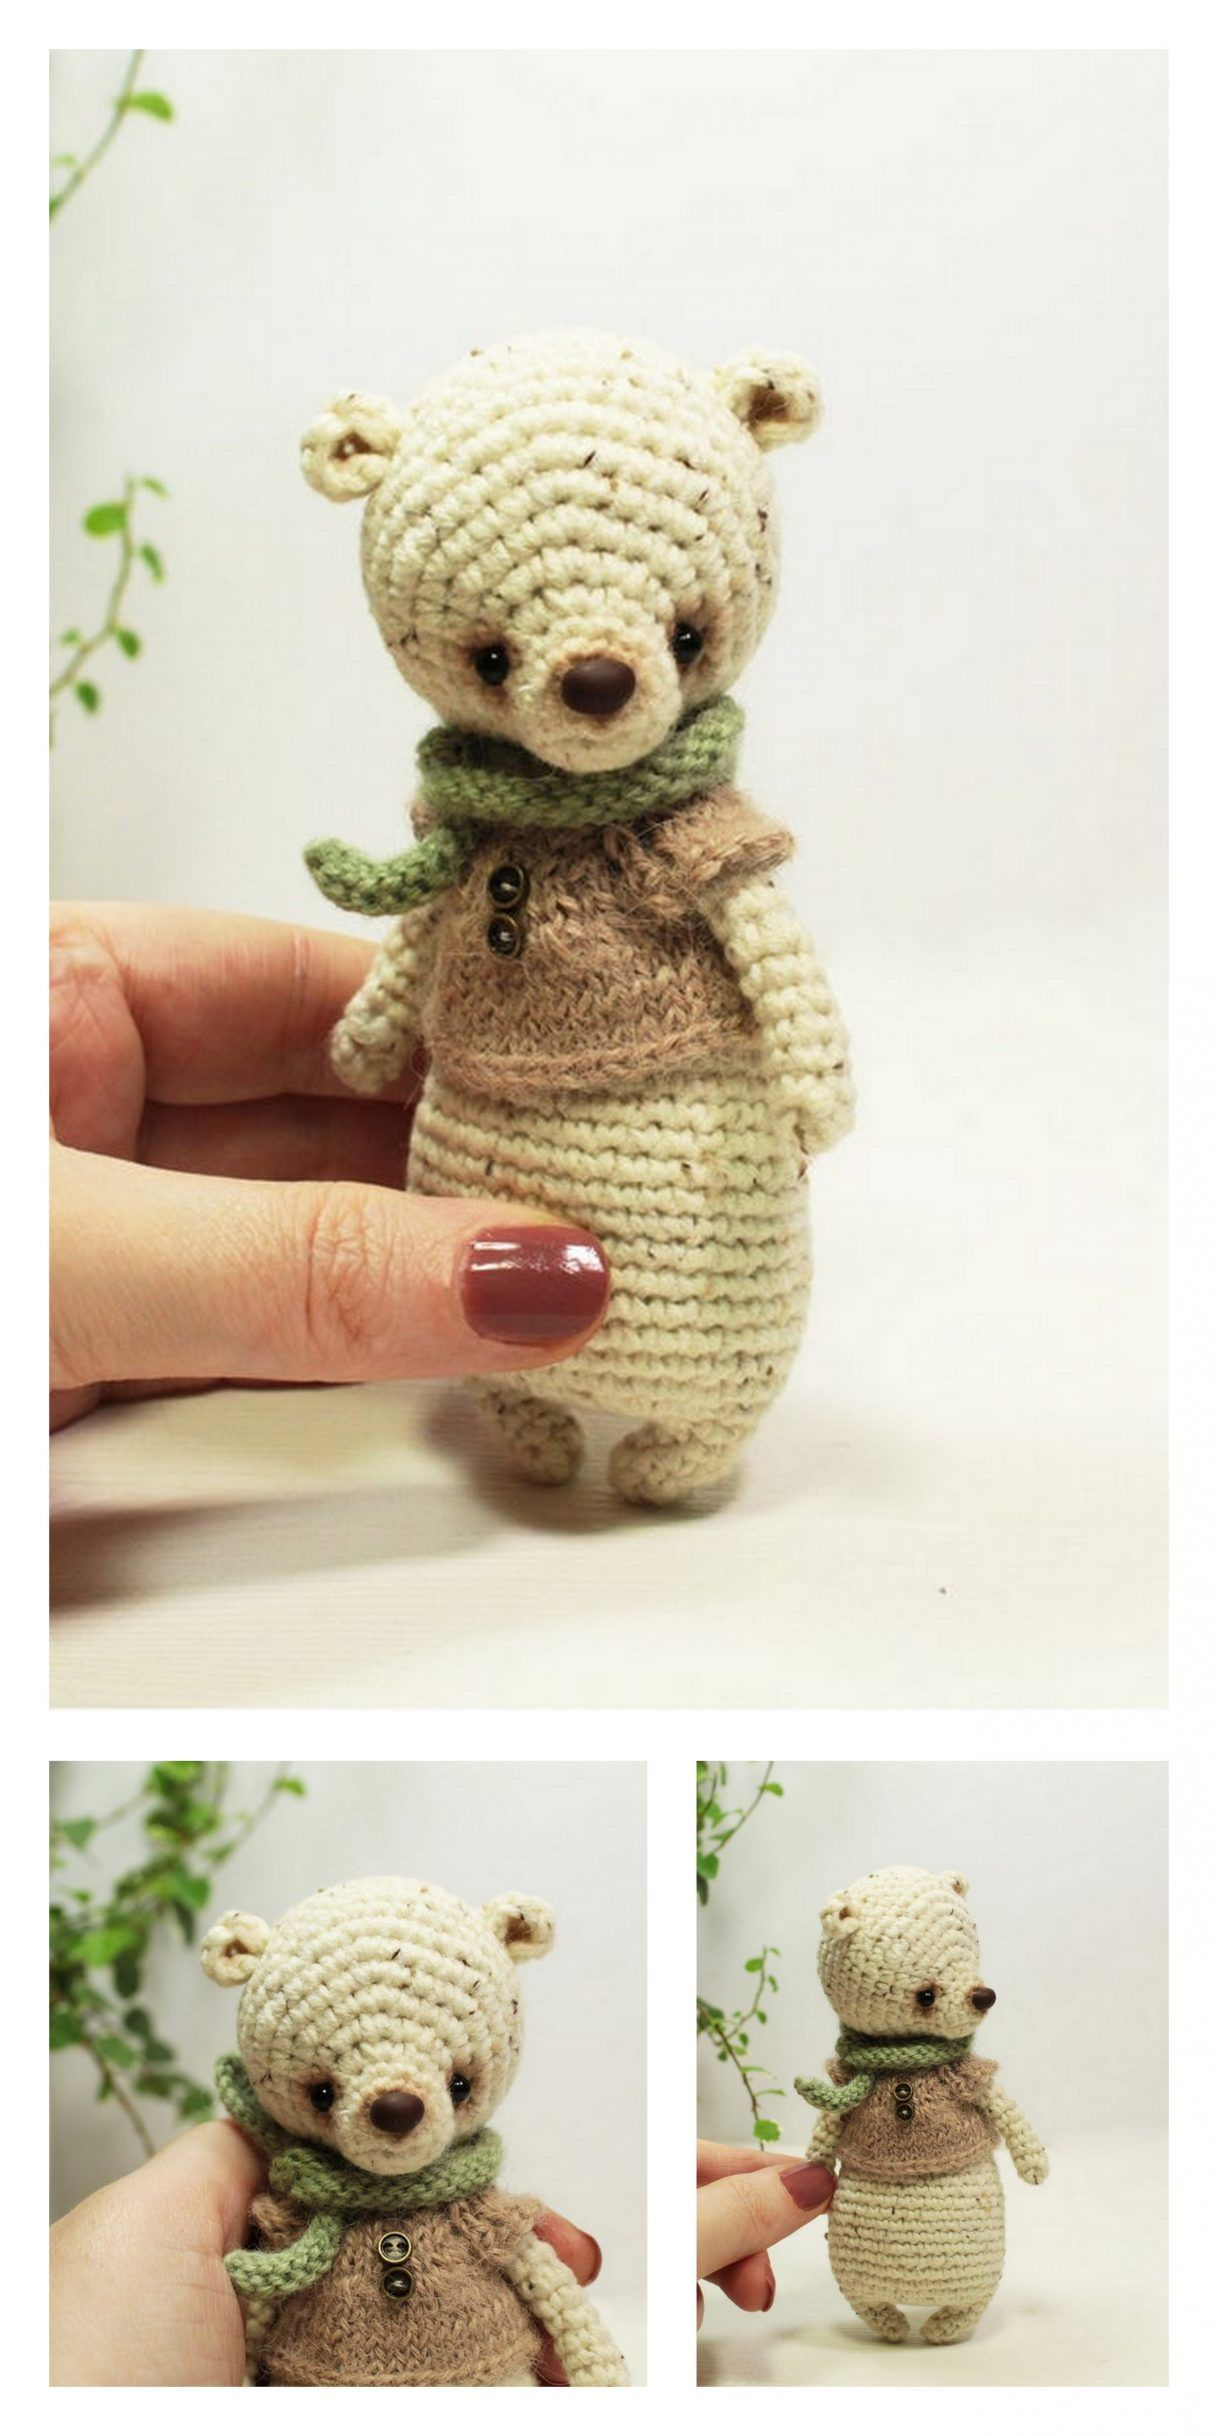 Cuddle Me Bear amigurumi pattern - Amigurumi Today | 2436x1218